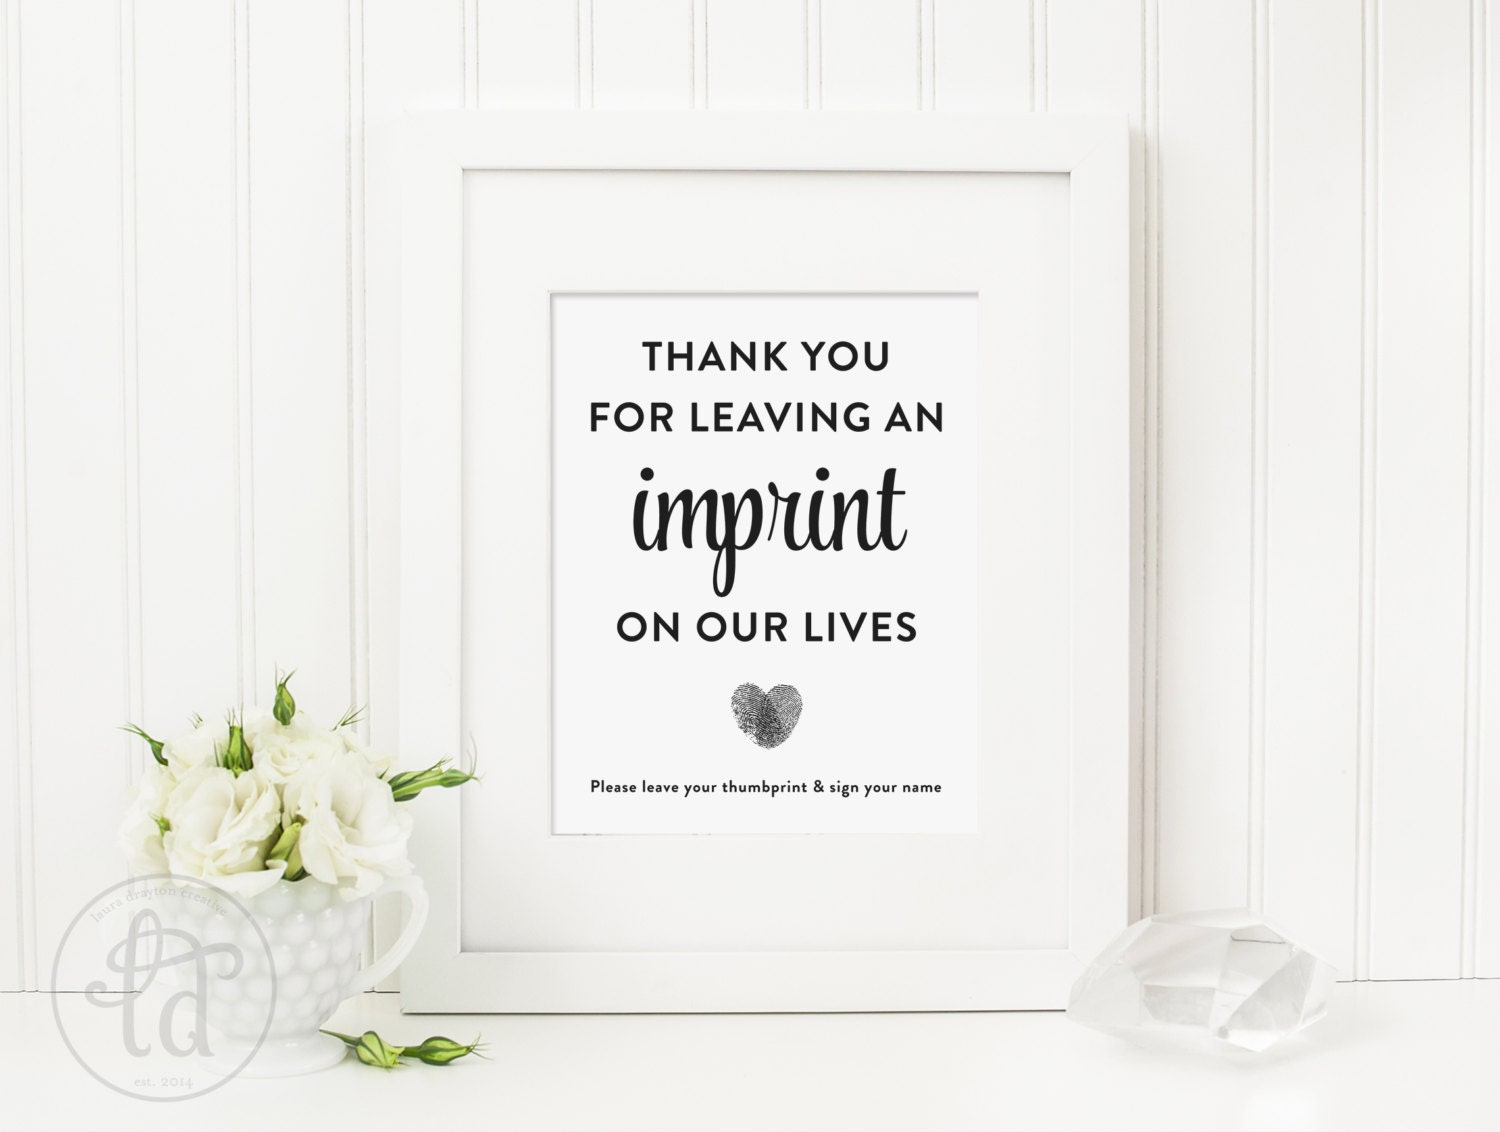 thumbprint guest book instructions